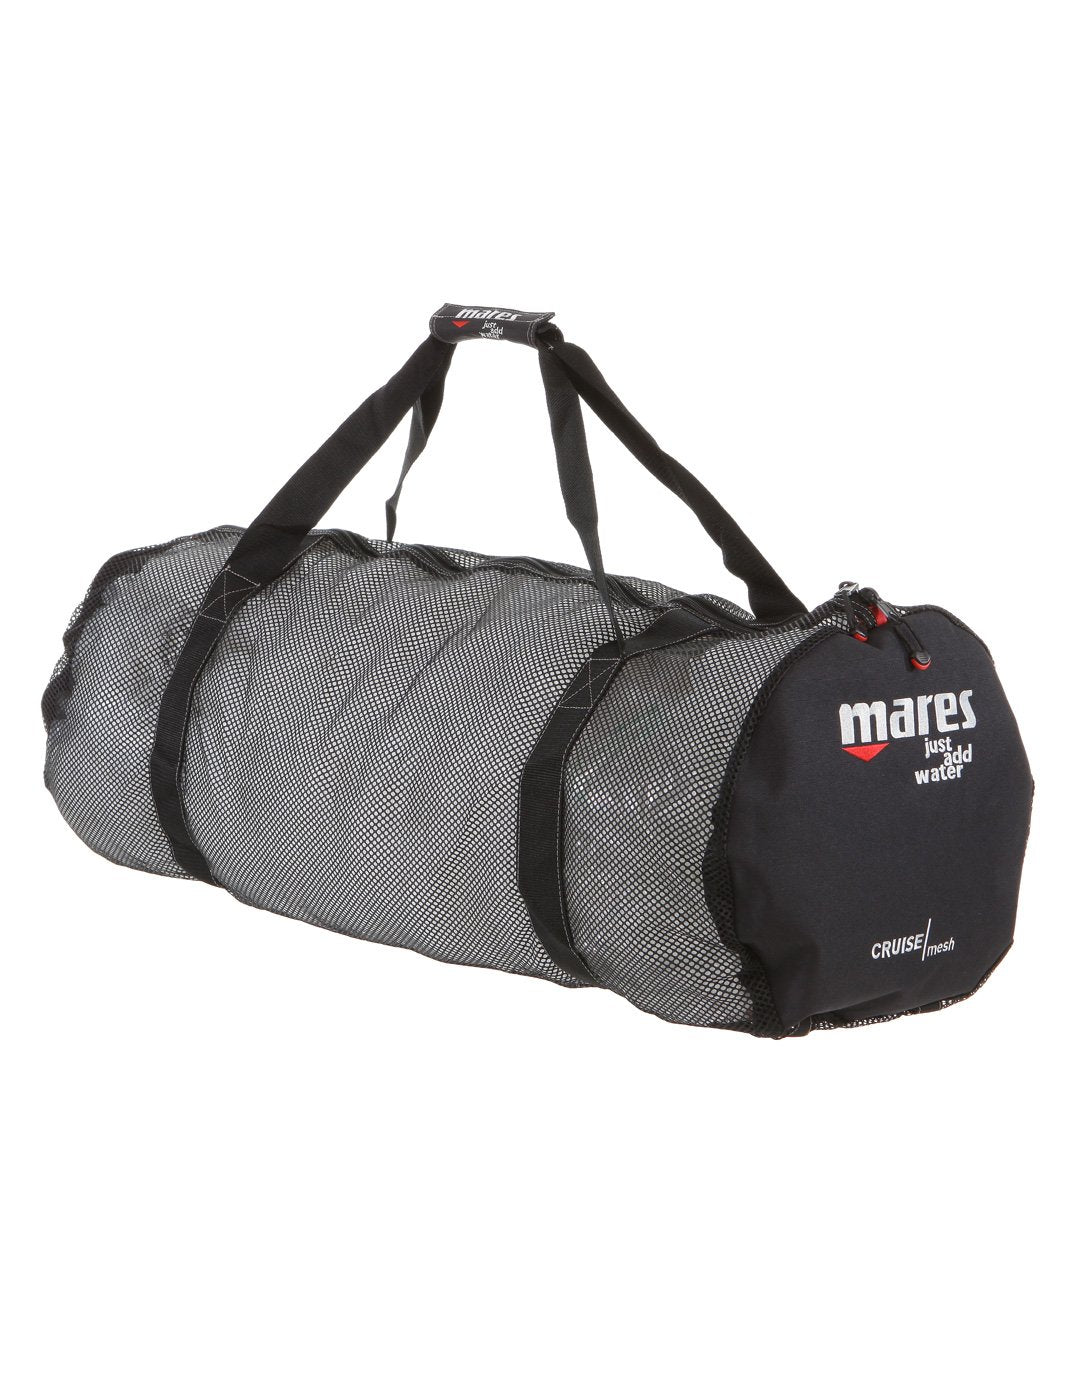 Image of Mares Cruise Mesh Bag